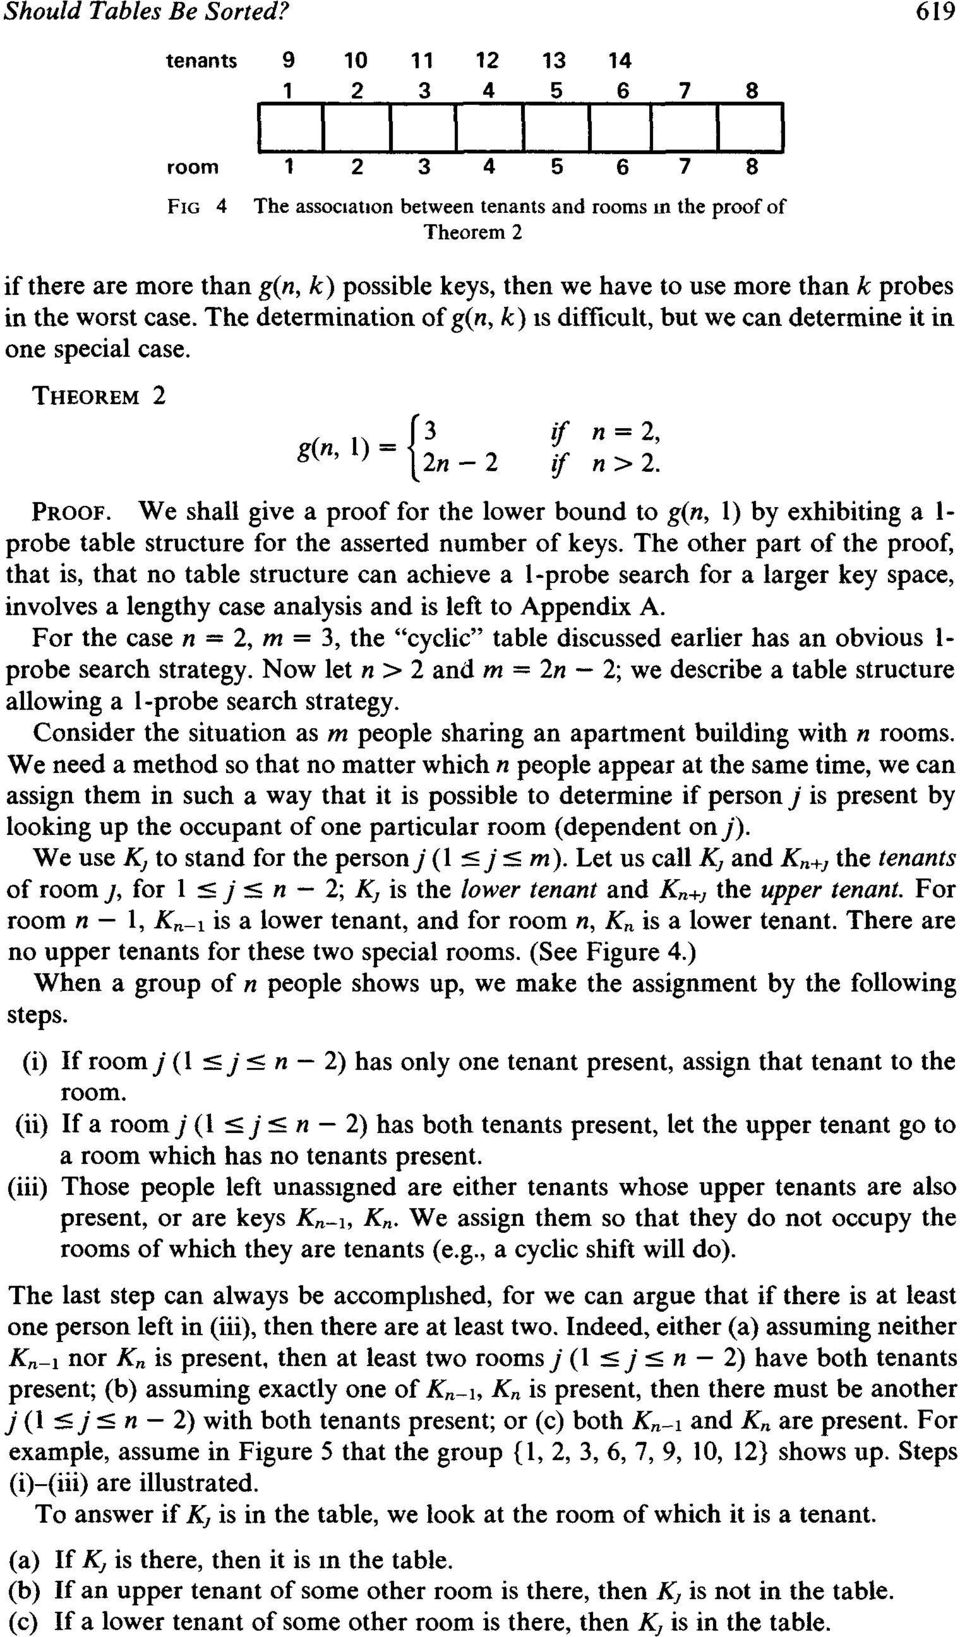 use more than k probes in the worst case. The determination ofg(n, k) ts difficult, but we can determine it in one special case. THEOREM 2 = [ 3 /f n = 2, g(n, 1) 2n-2 /f n>2. L PROOF.